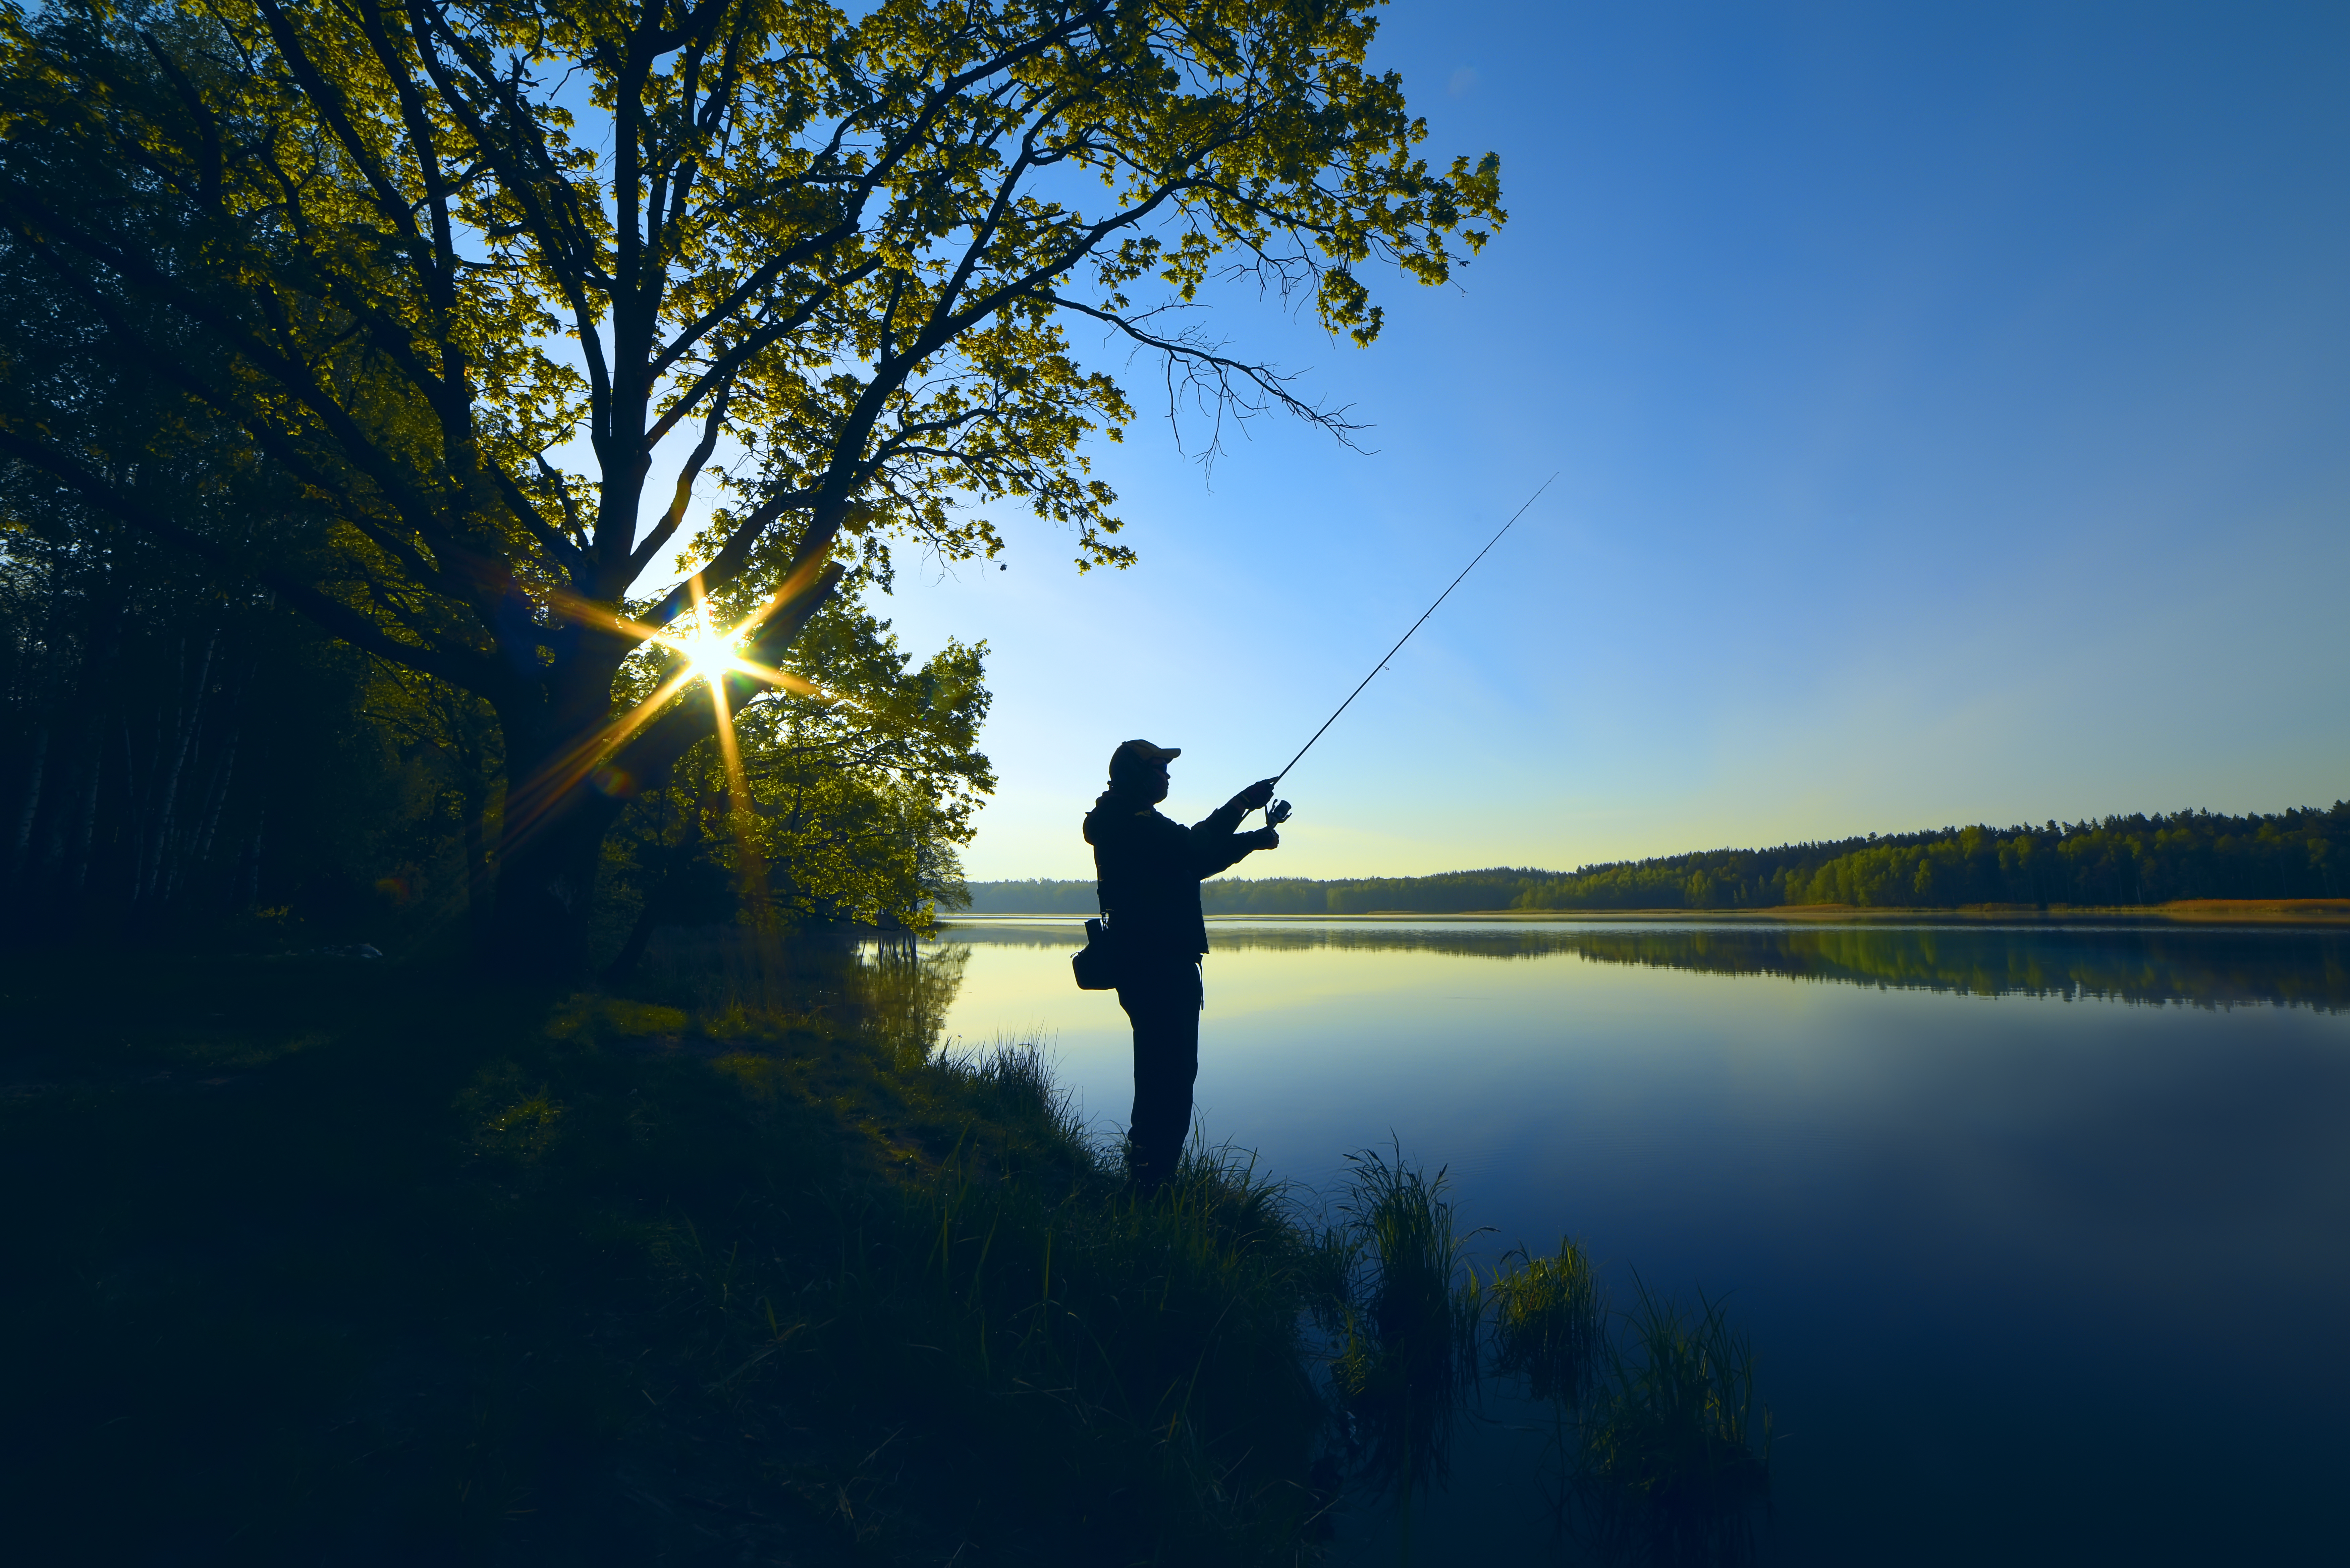 Fishing on the edge of La Loue in the Jura